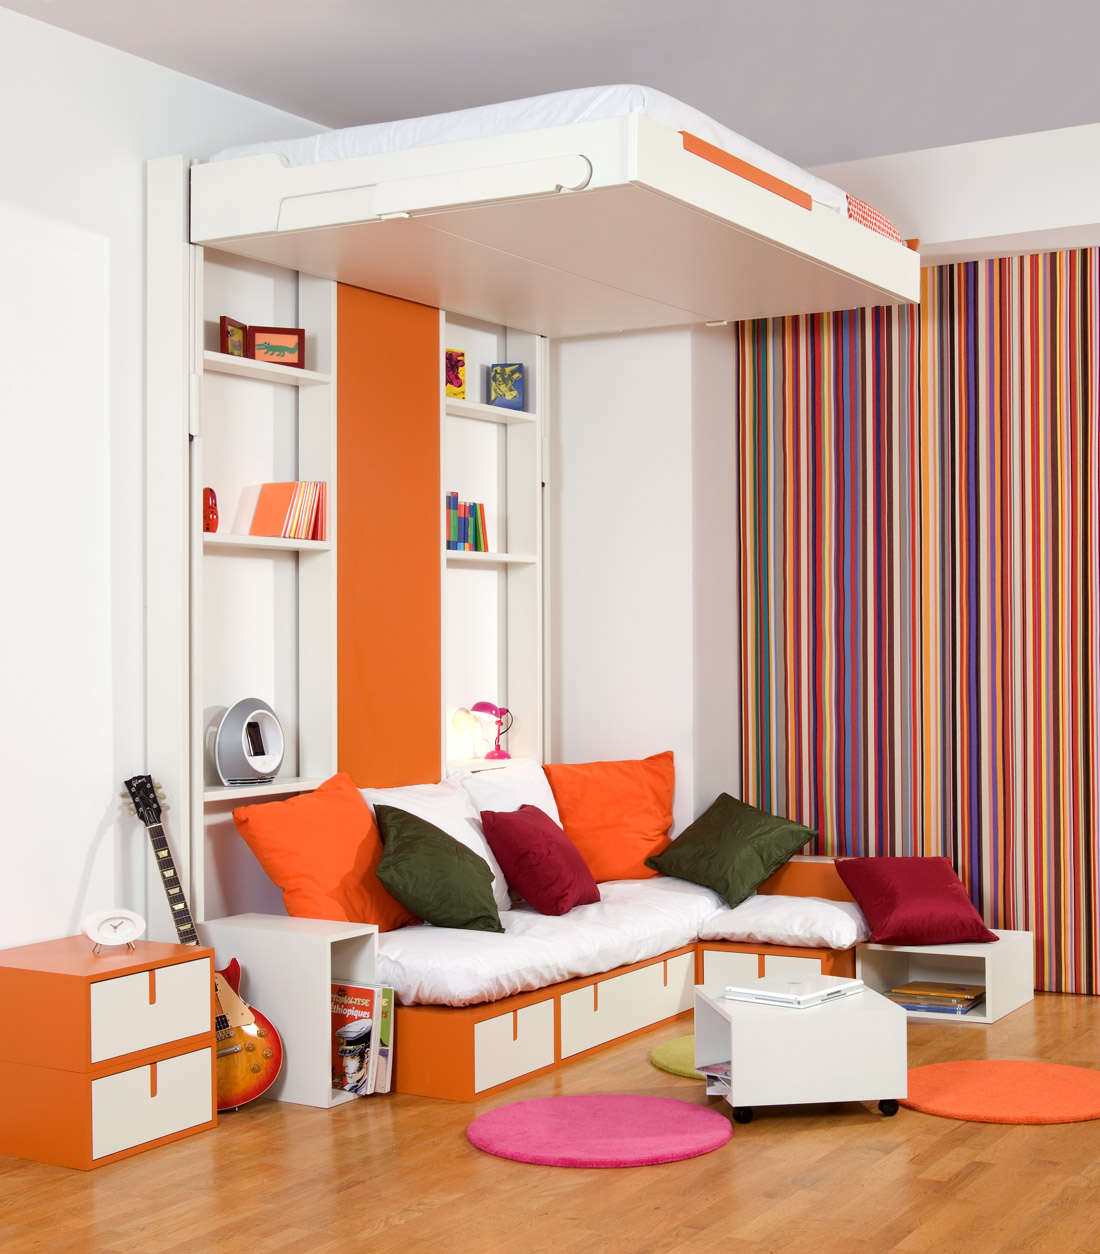 Use Awesome Space Saving Beds inside Fancy Bedroom with Comfy Bench and Small White Tables